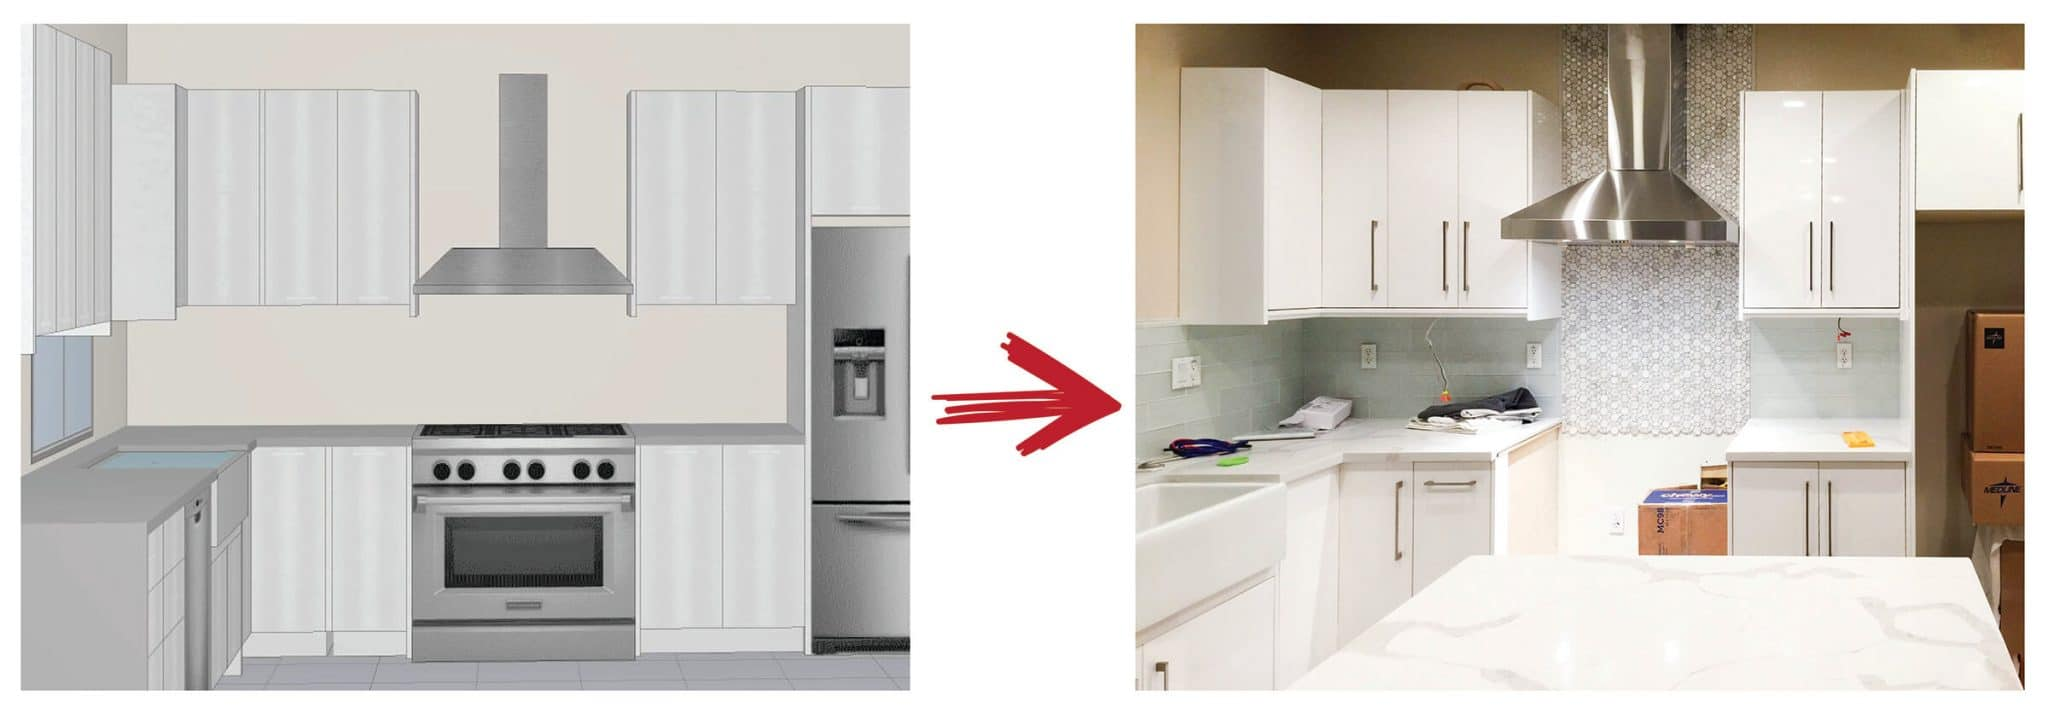 White Gloss Kitchen Cabinets Design How to Design the Dream Kitchen: White Gloss Euro Cabinets